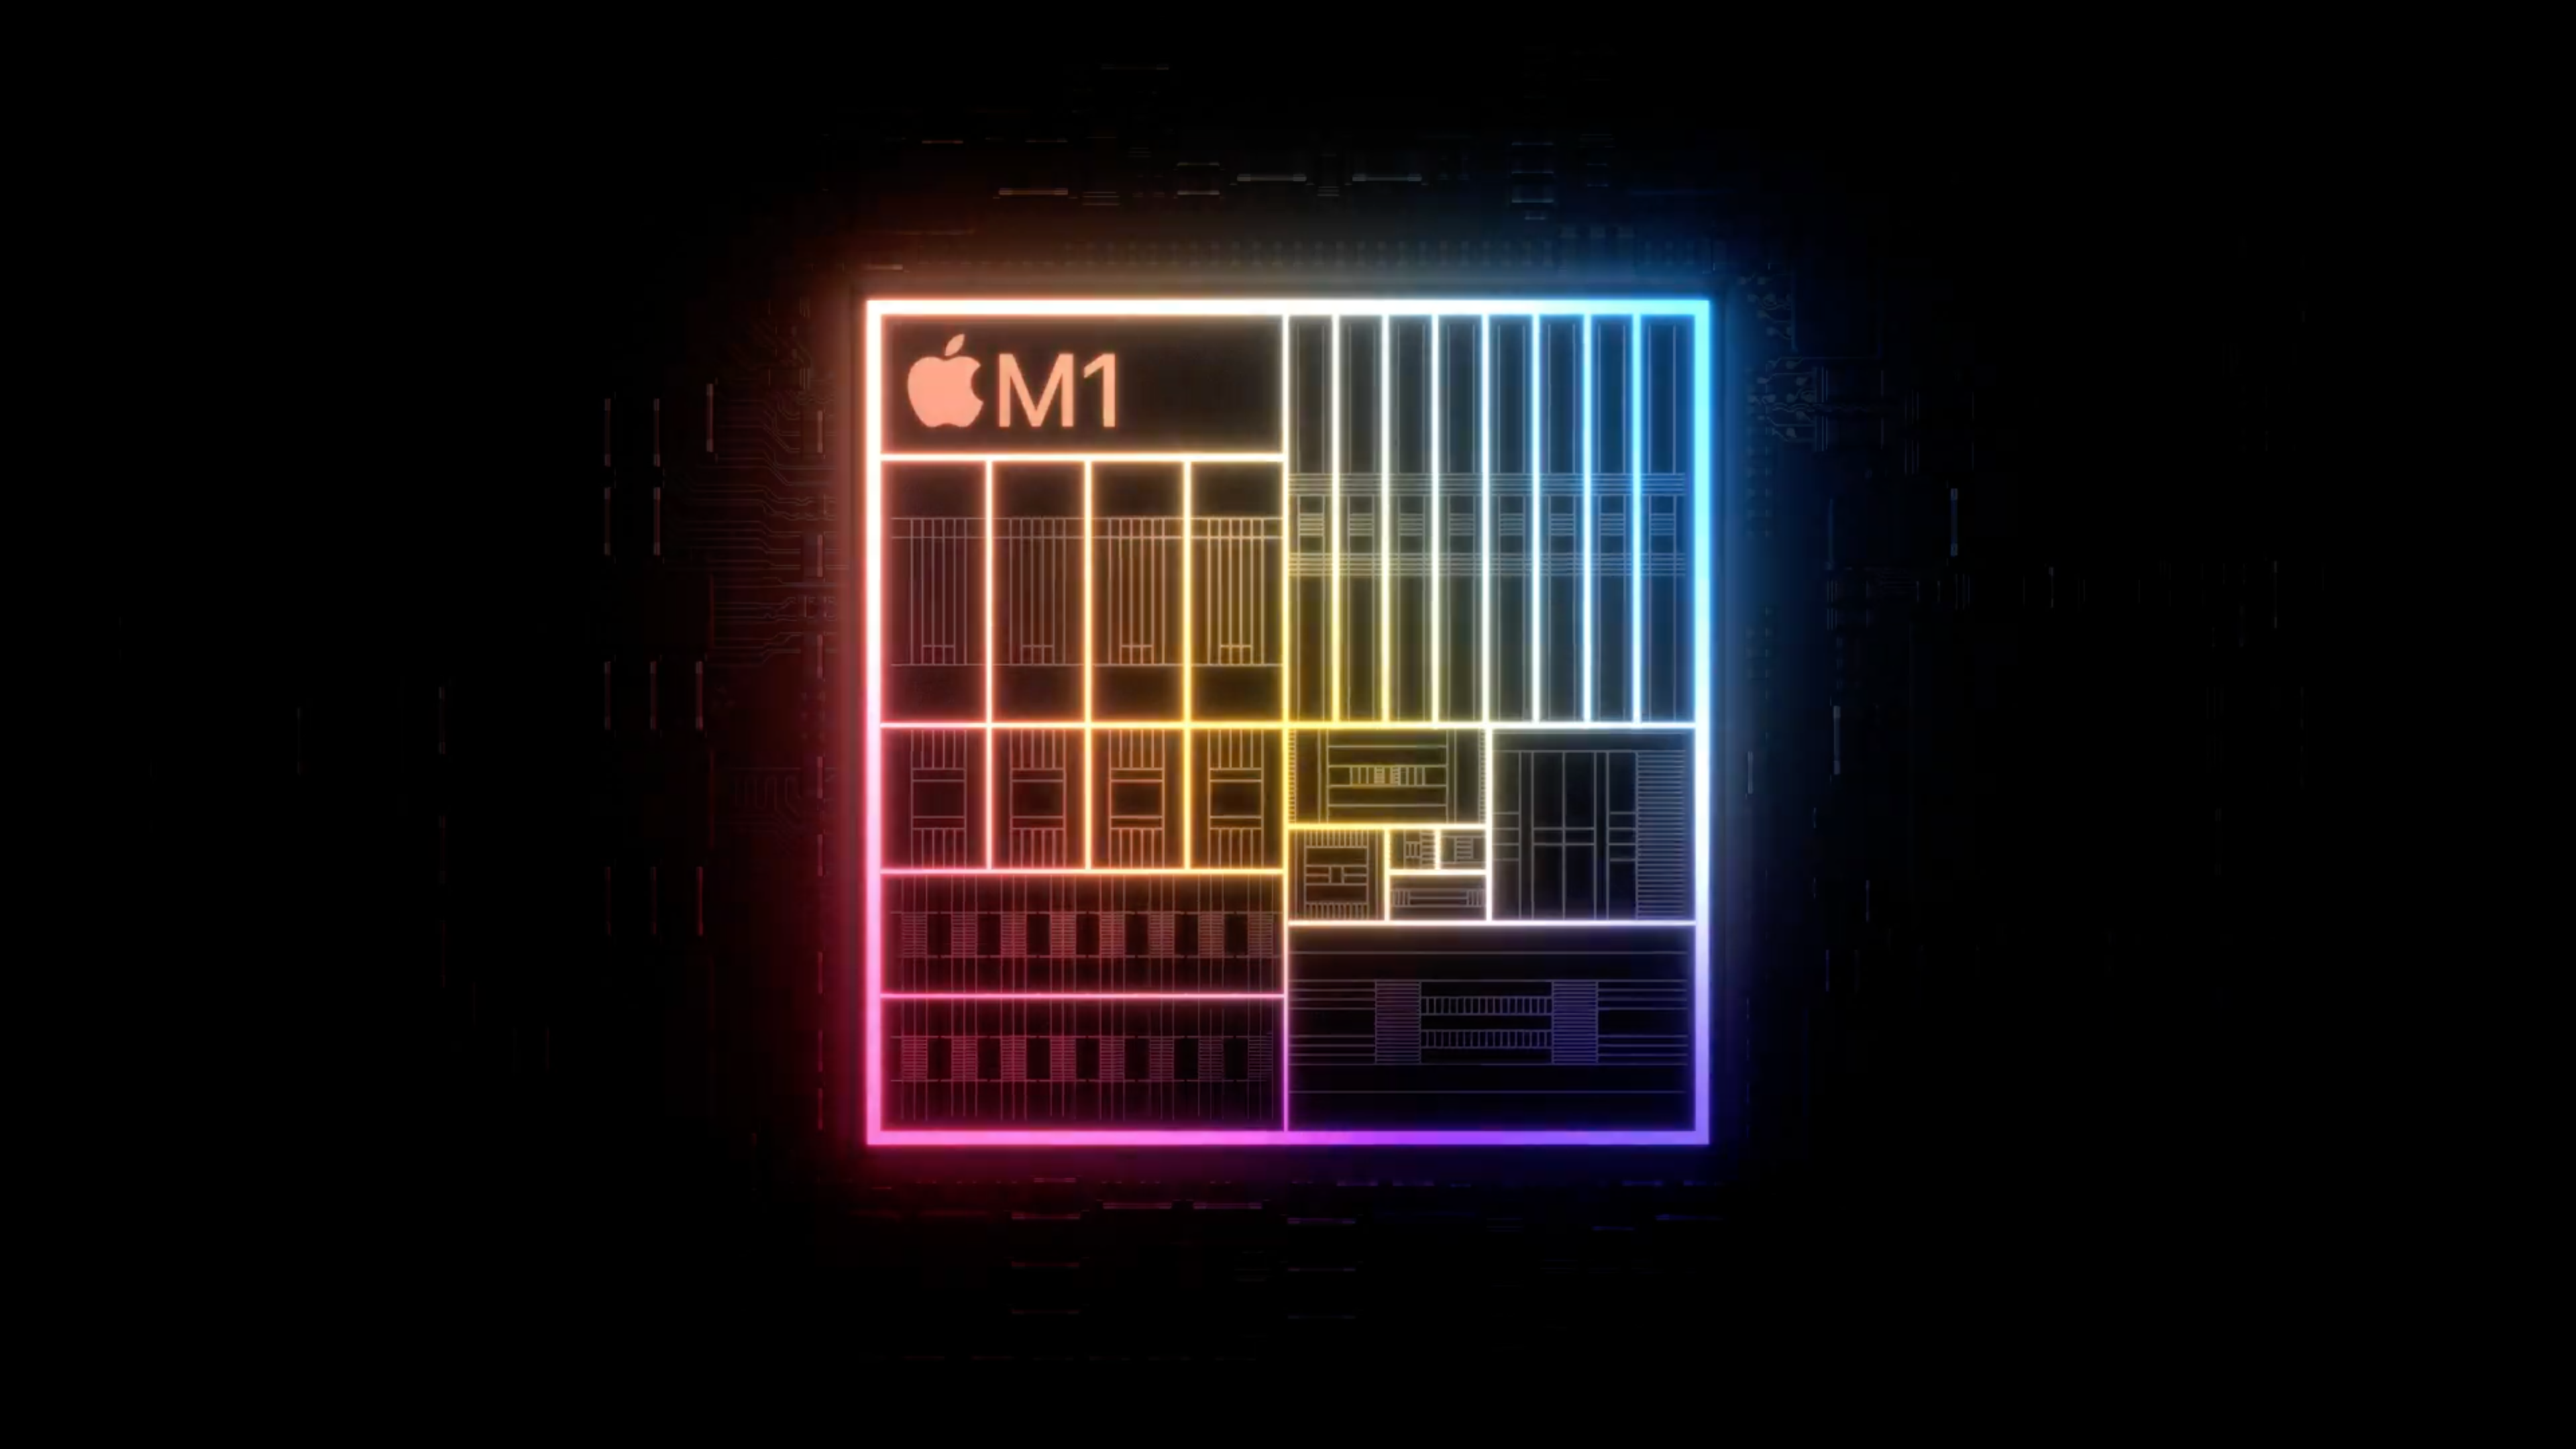 029-apple-silicon-m1-chip-2020-Advertisment.png